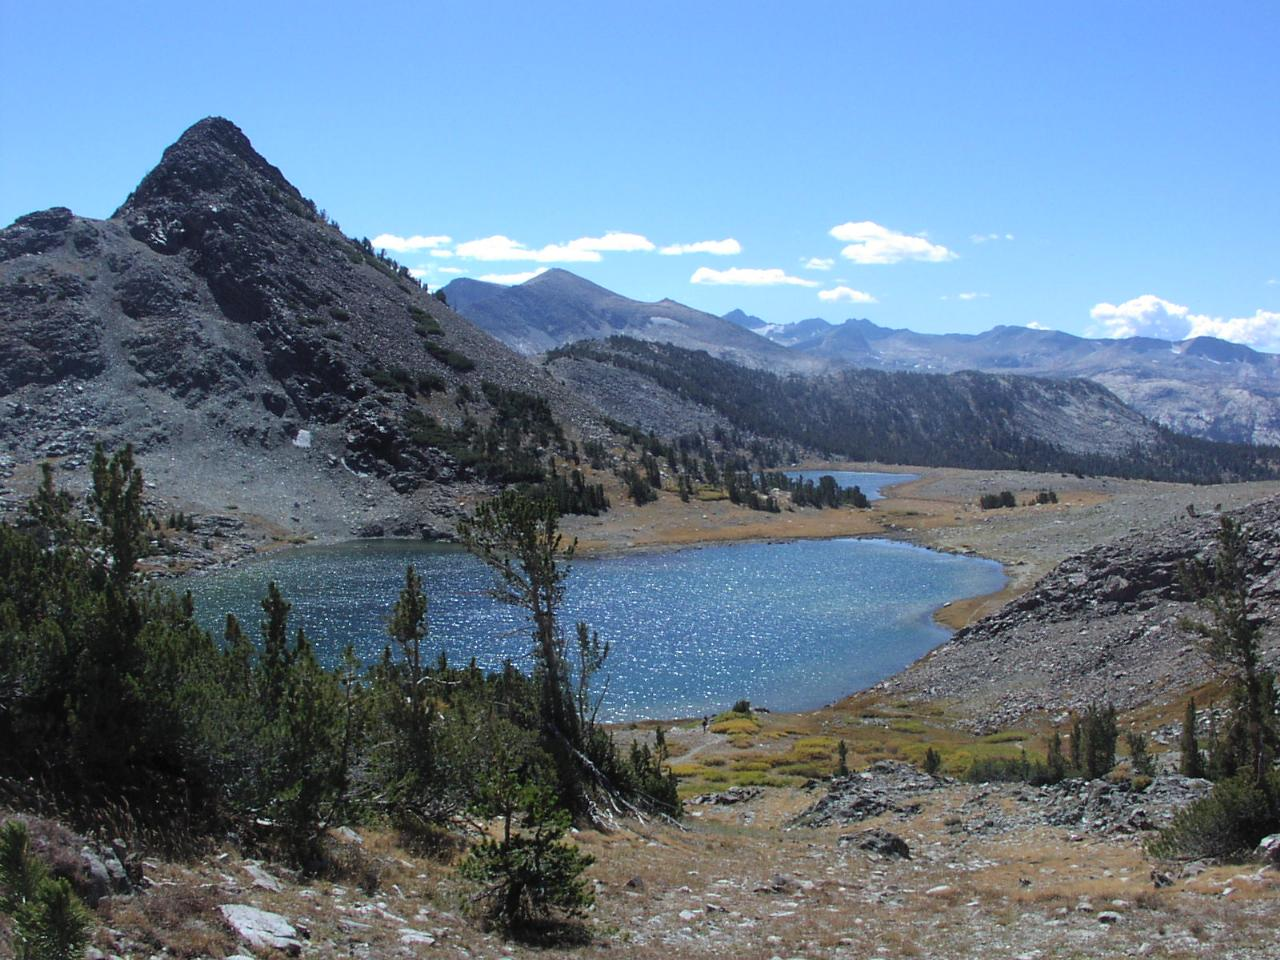 Gaylor Lakes added by smbrady17